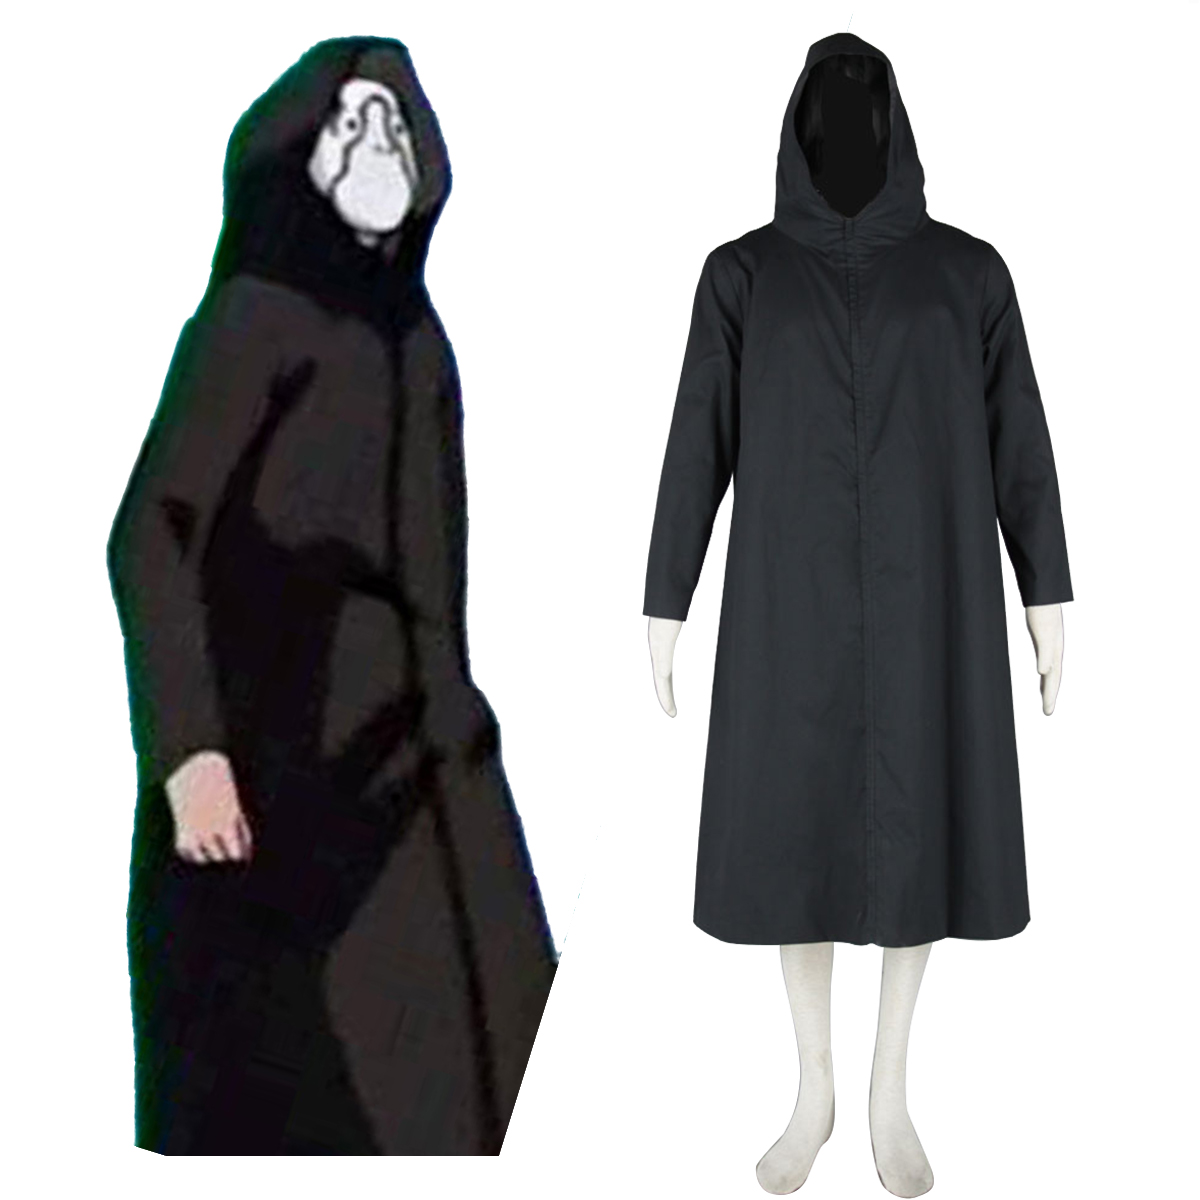 Naruto ANBU Cloak 2 Black Anime Cosplay Costumes Outfit